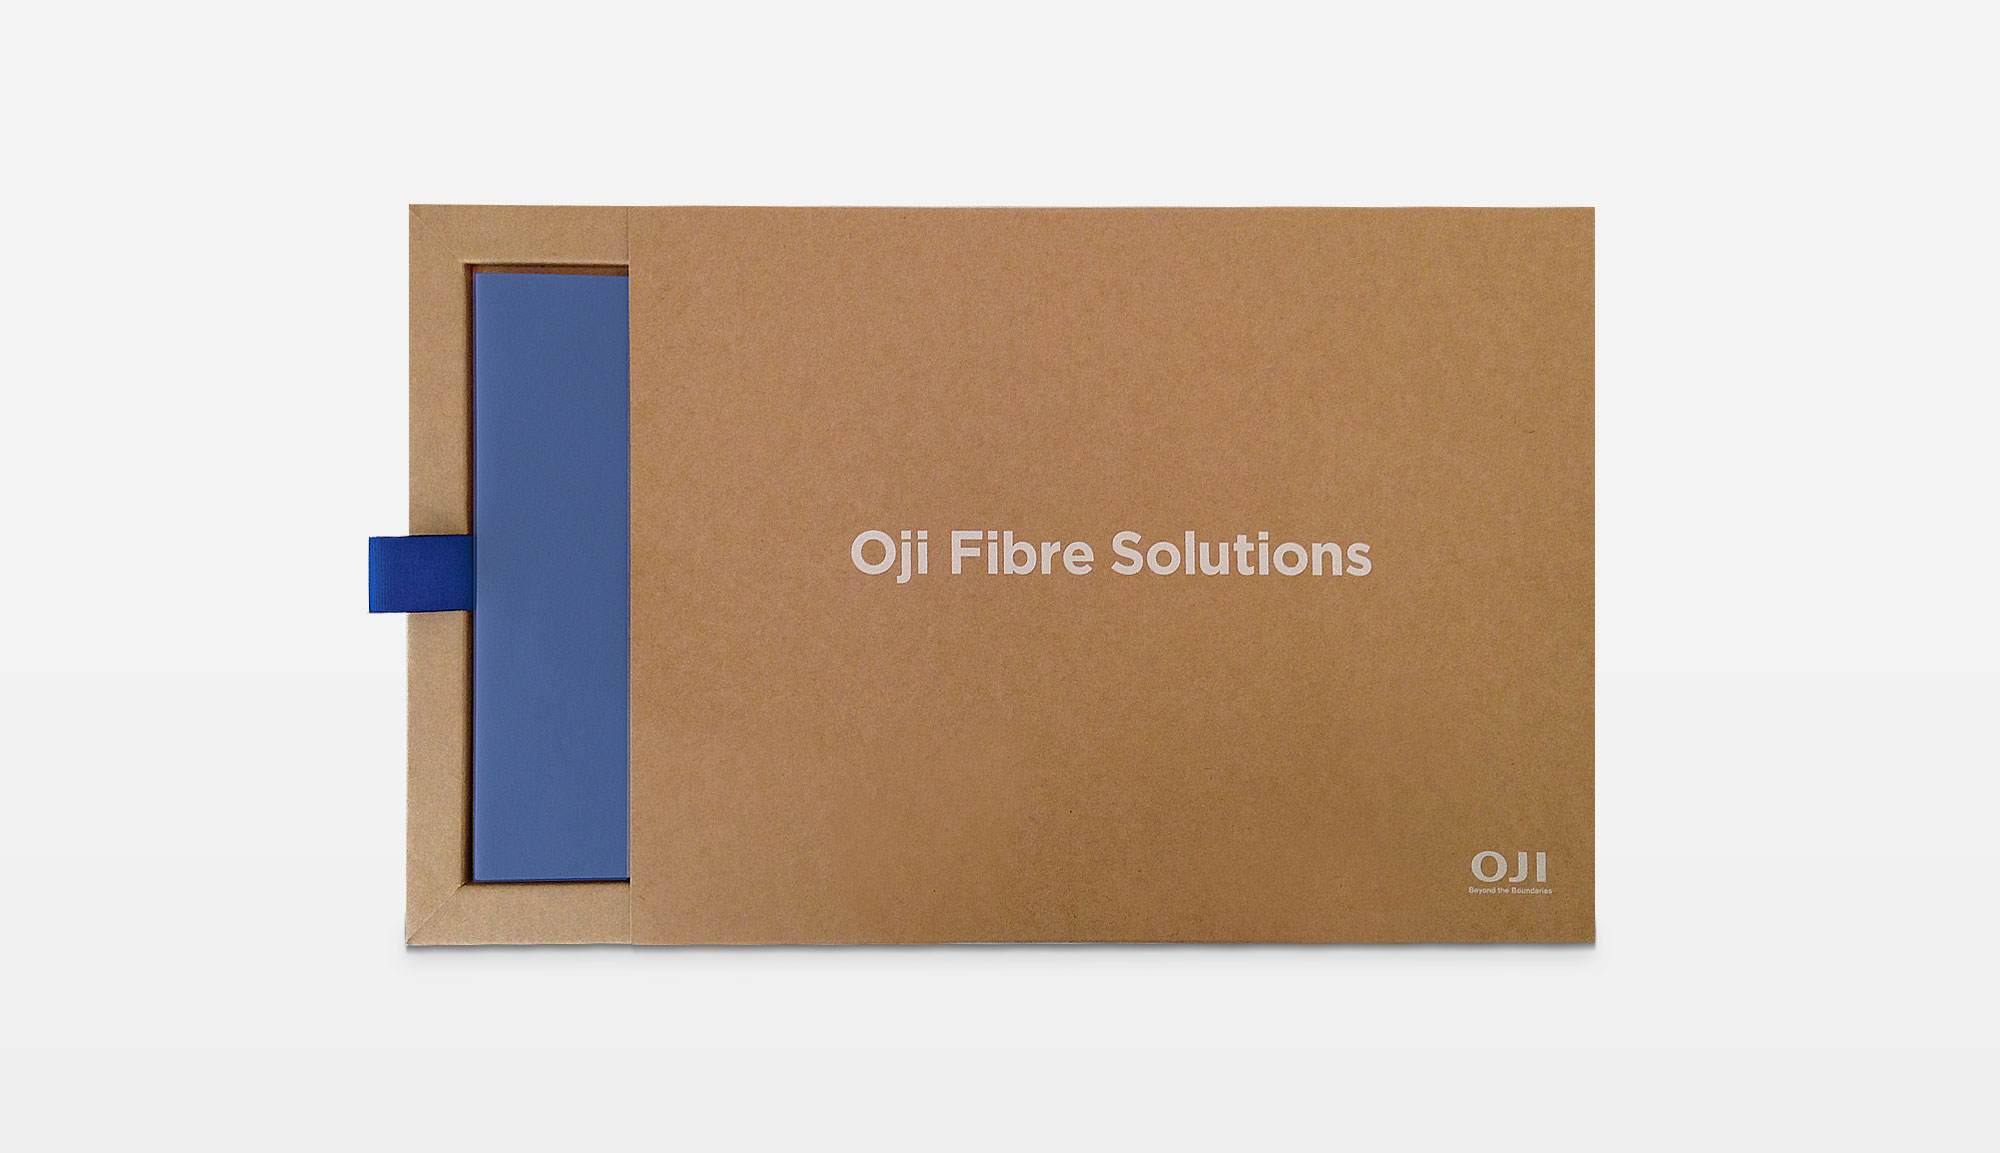 Oji-fiber-solutions_box